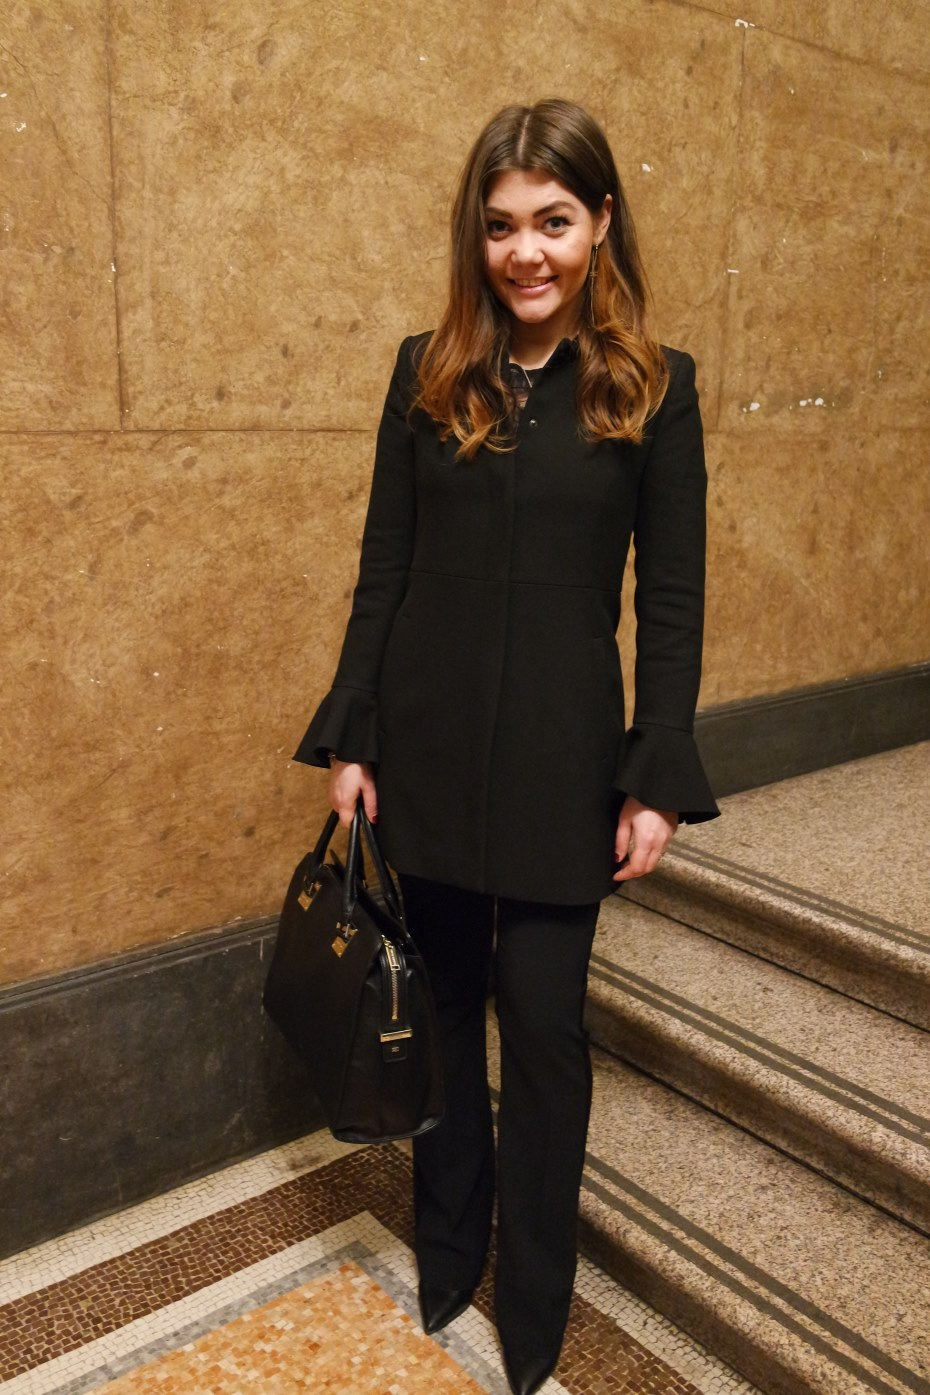 The smart dressing - outfit total black